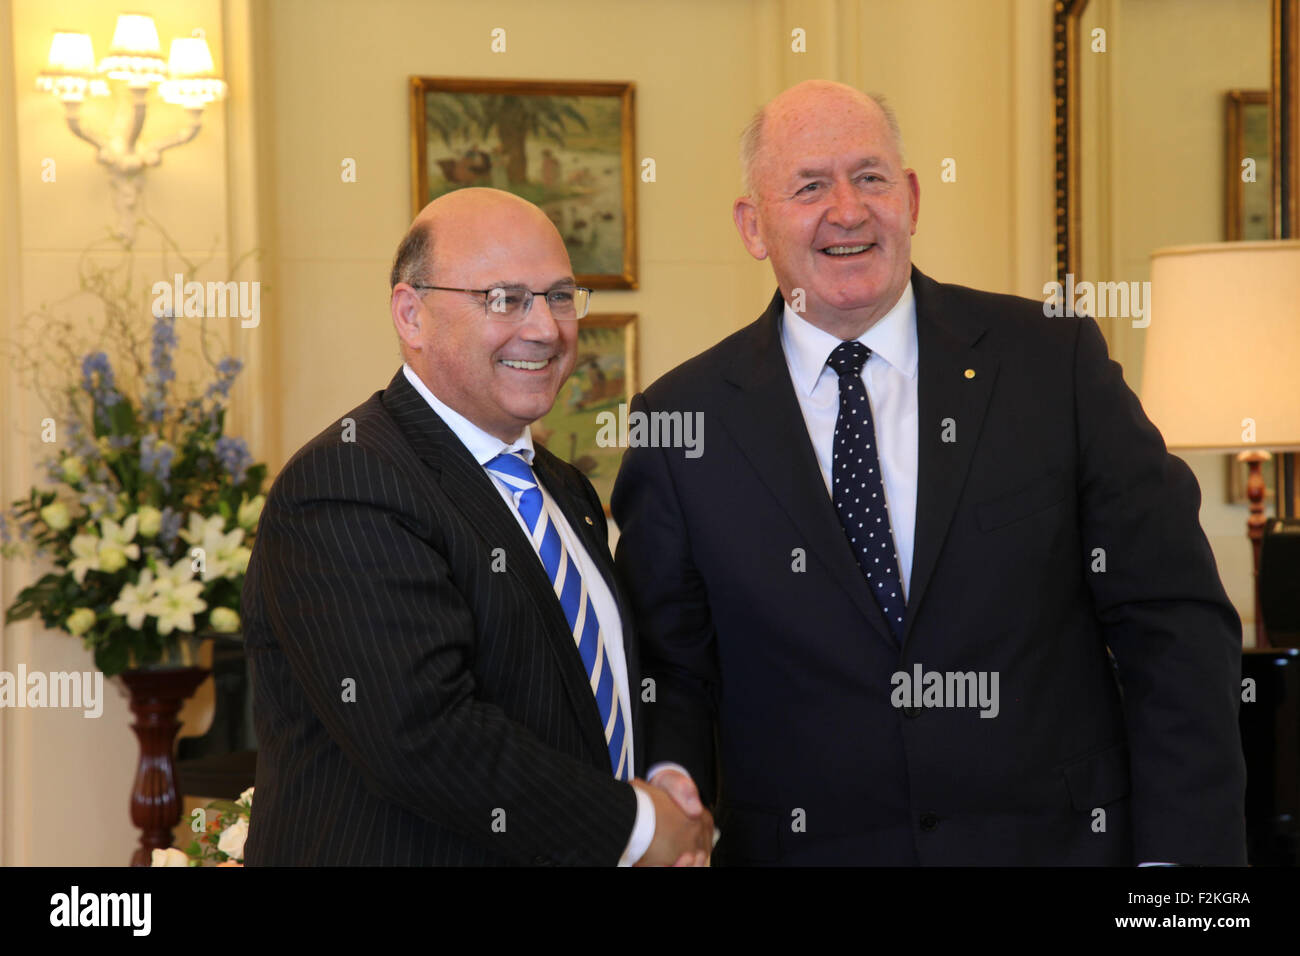 Canberra, Australia. 21st Sep, 2015. Arthur Sinodinos (L) is sworn in as Cabinet Secretary by Governor General Sir - Stock Image